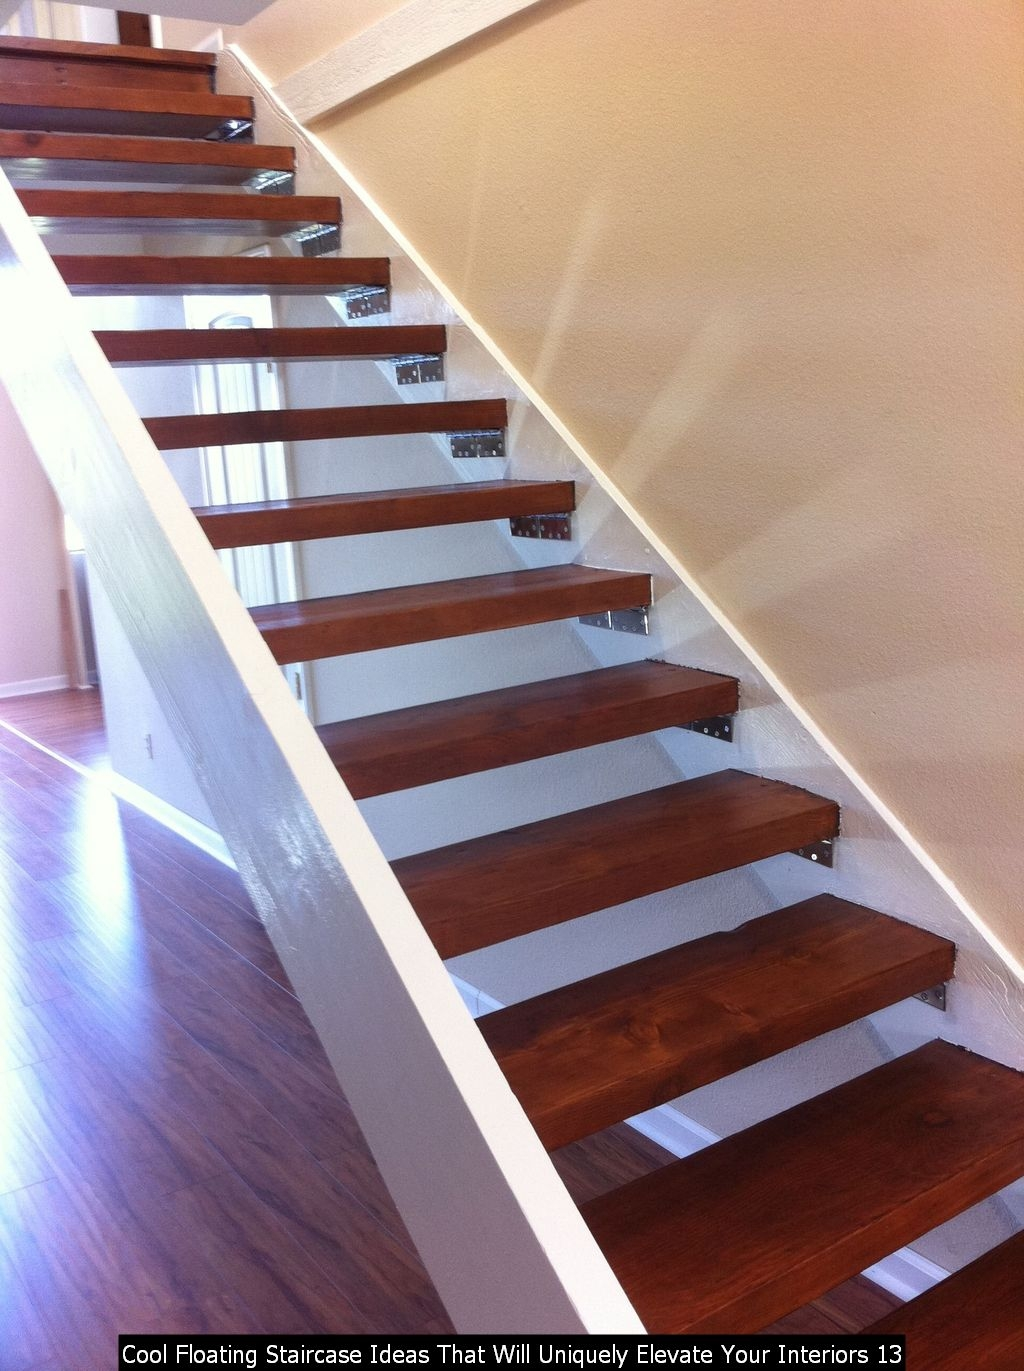 Cool Floating Staircase Ideas That Will Uniquely Elevate Your Interiors 13